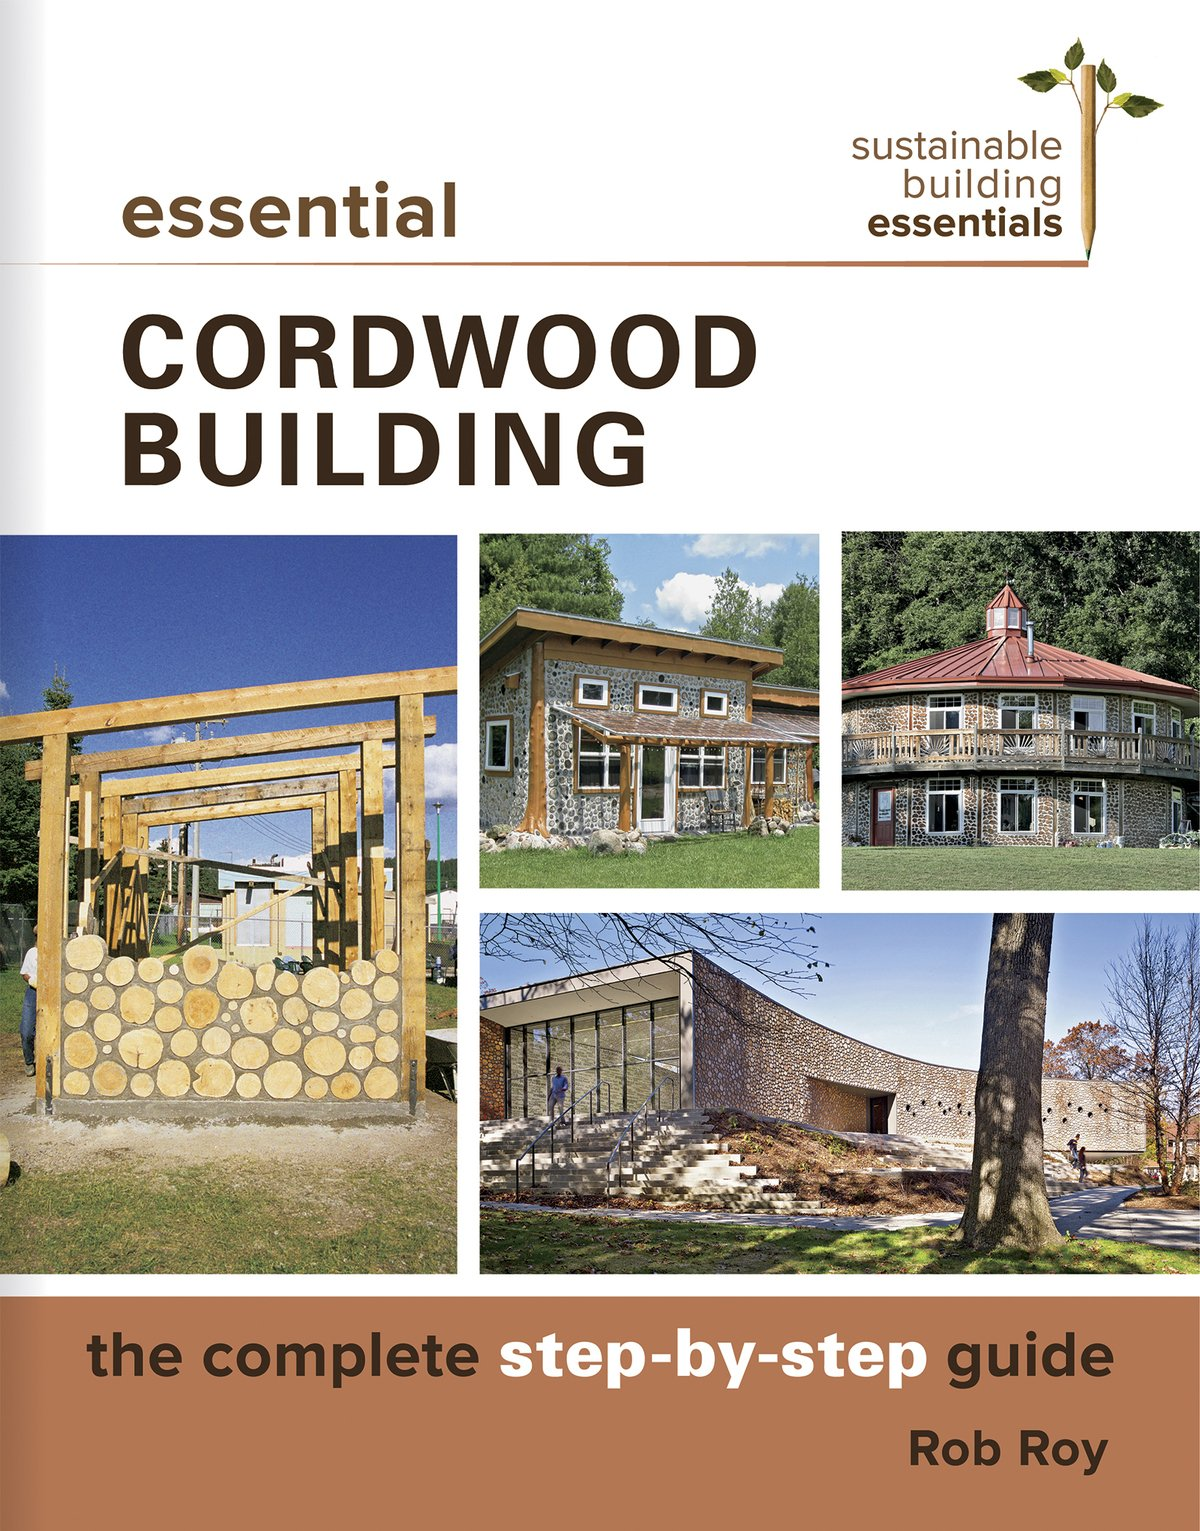 Essential cordwood building the complete step by step guide essential cordwood building the complete step by step guide sustainable building essentials series rob roy 9780865718524 amazon books fandeluxe Image collections